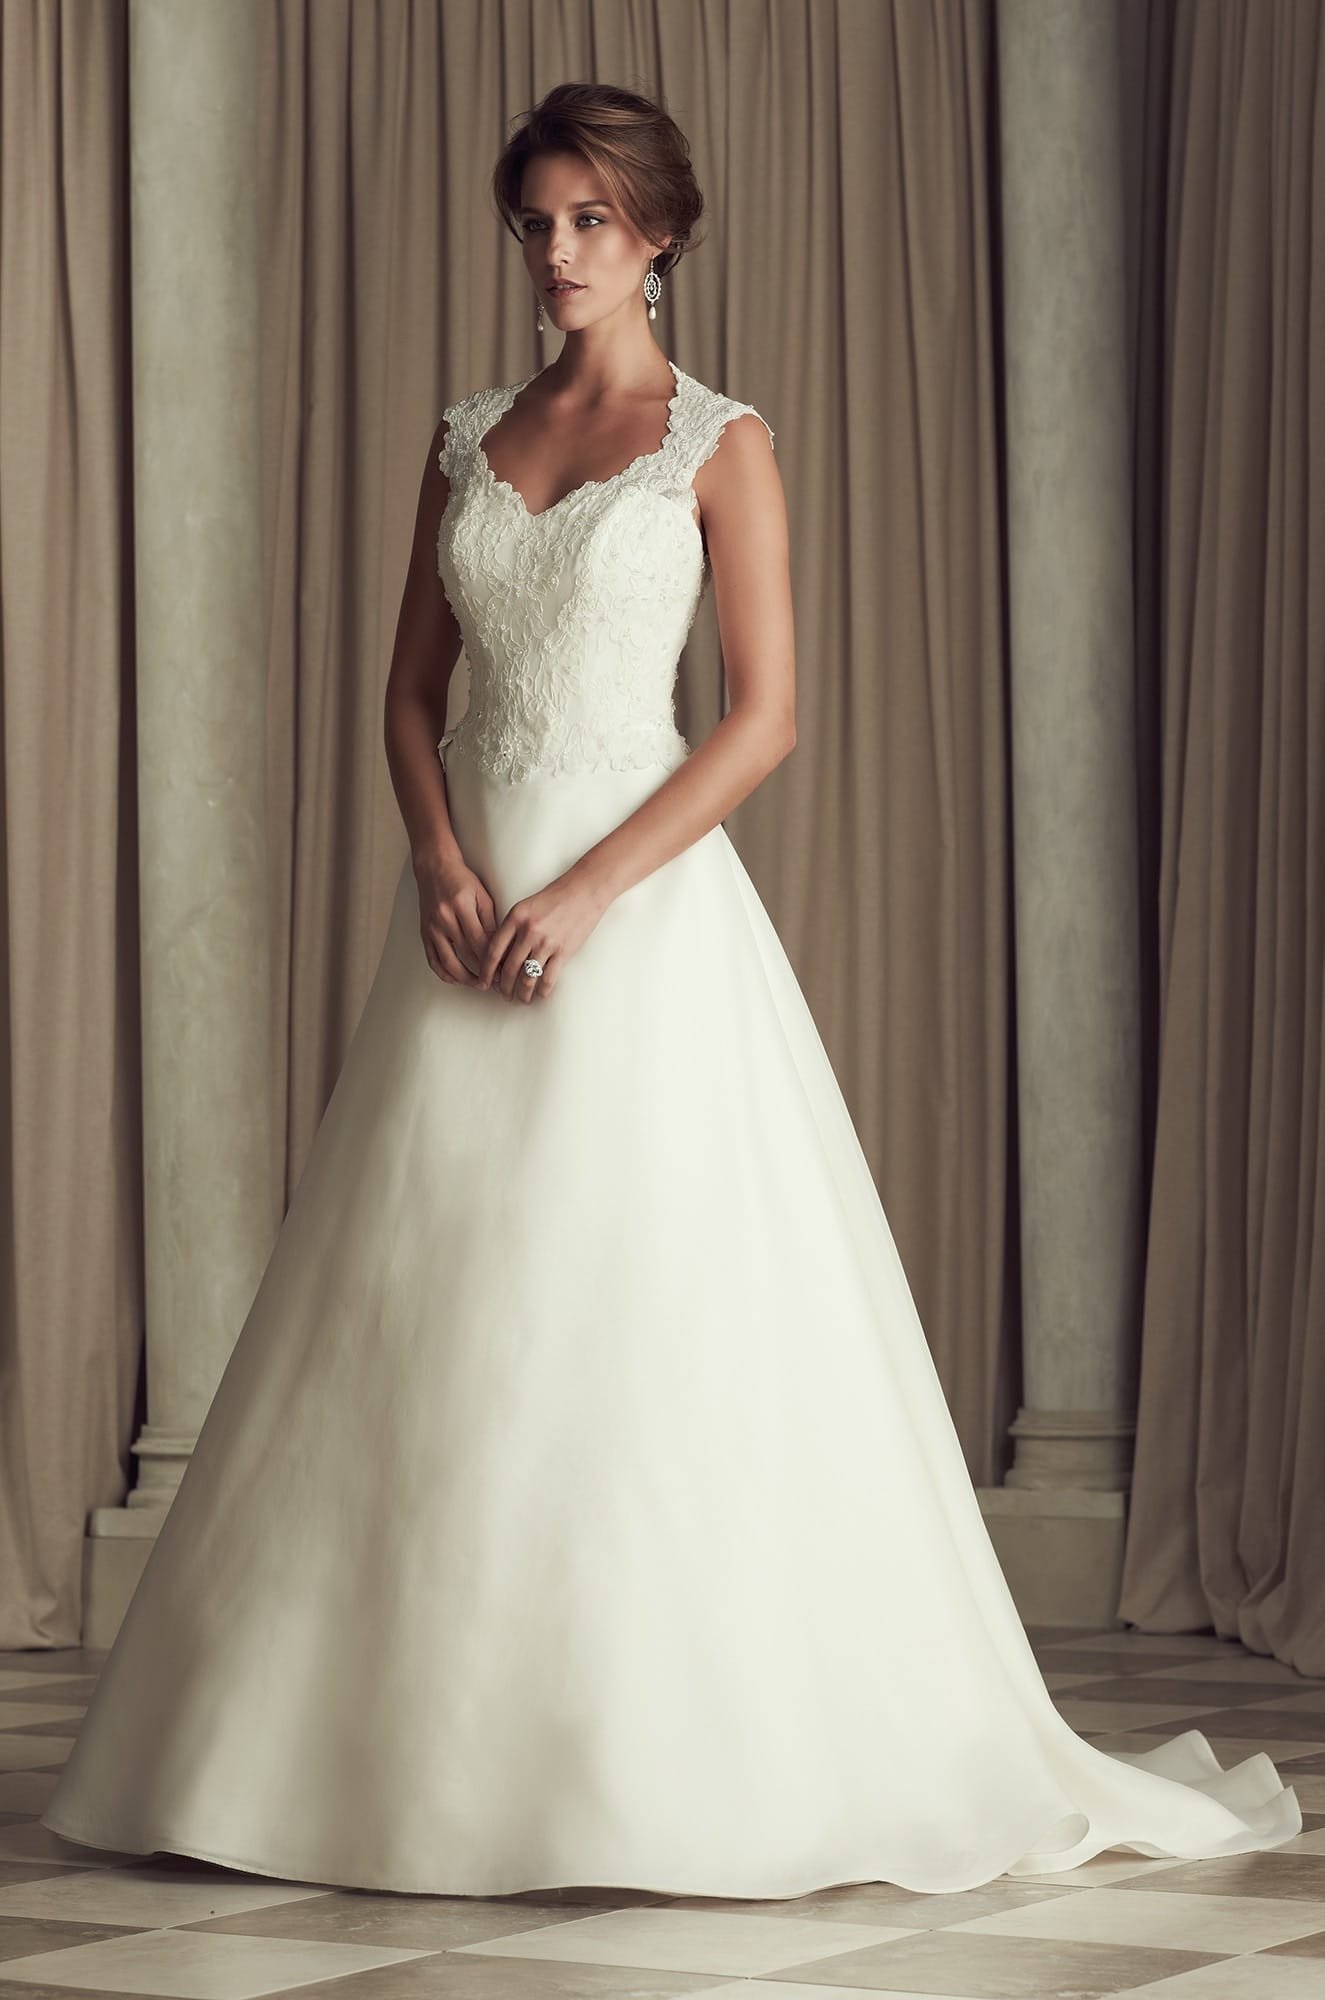 Paloma blanca 4452 sell my wedding dress online sell for Sell wedding dress for free